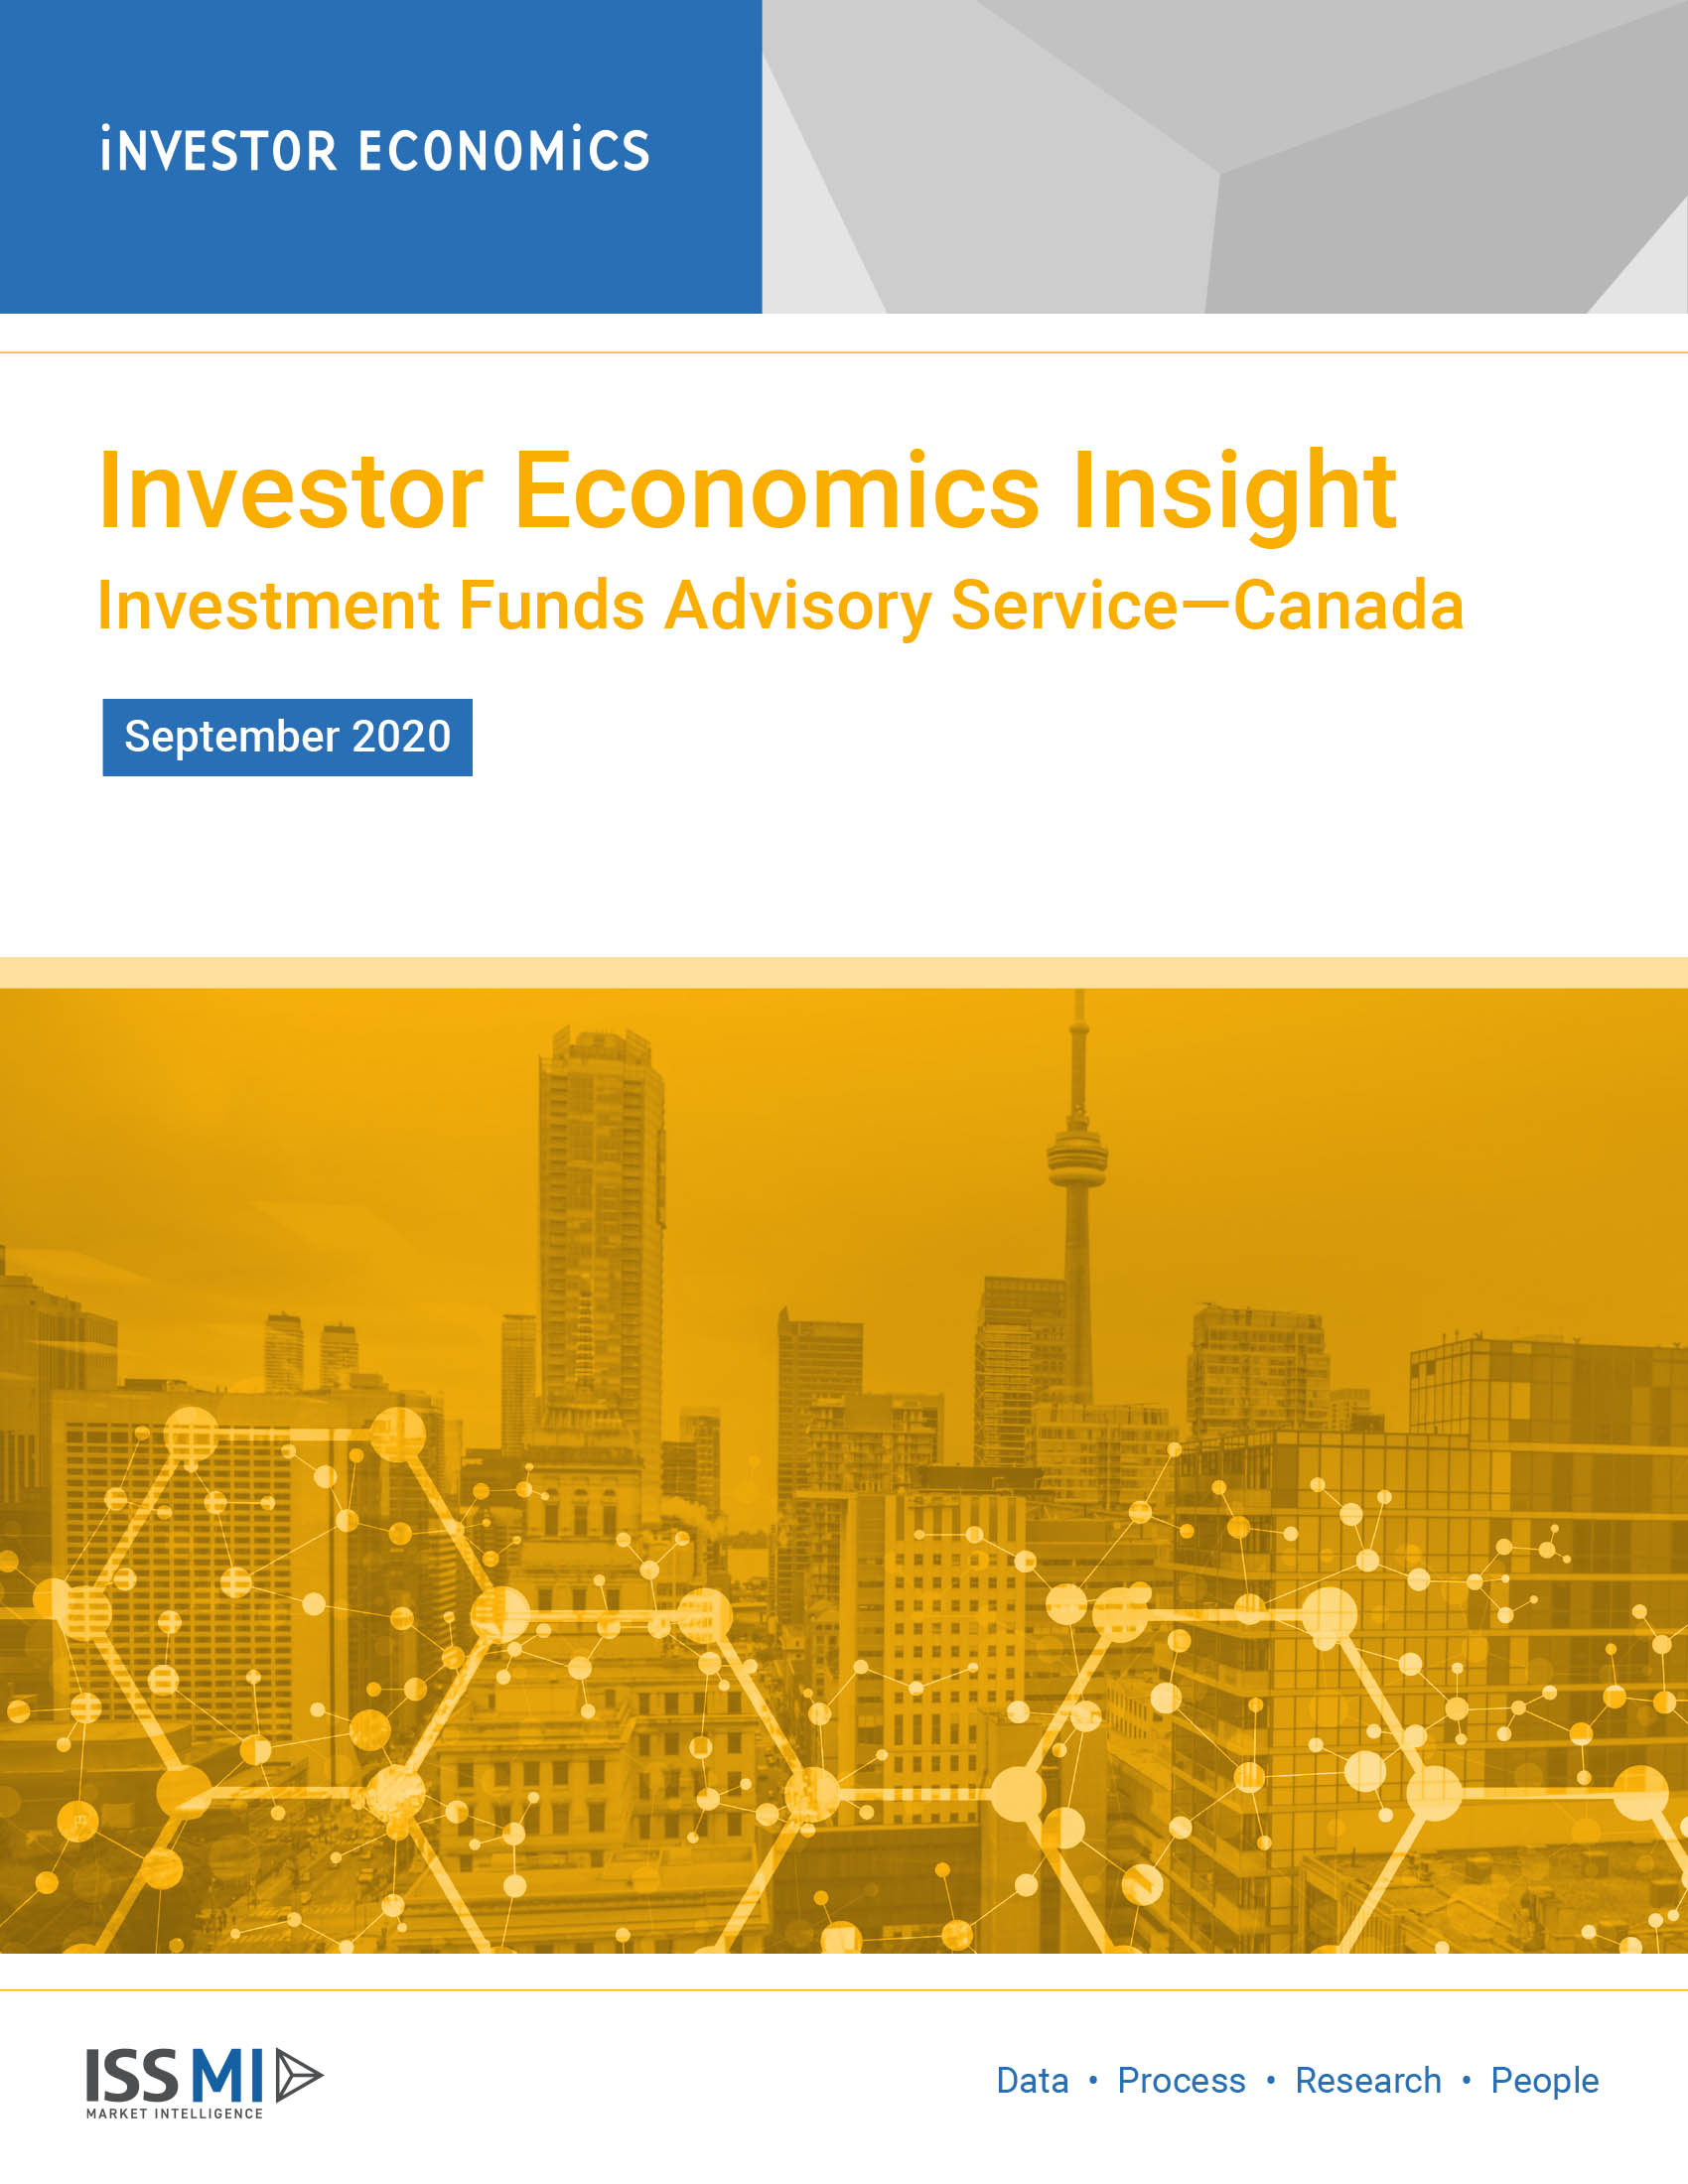 Investor Economics Insight September 2020